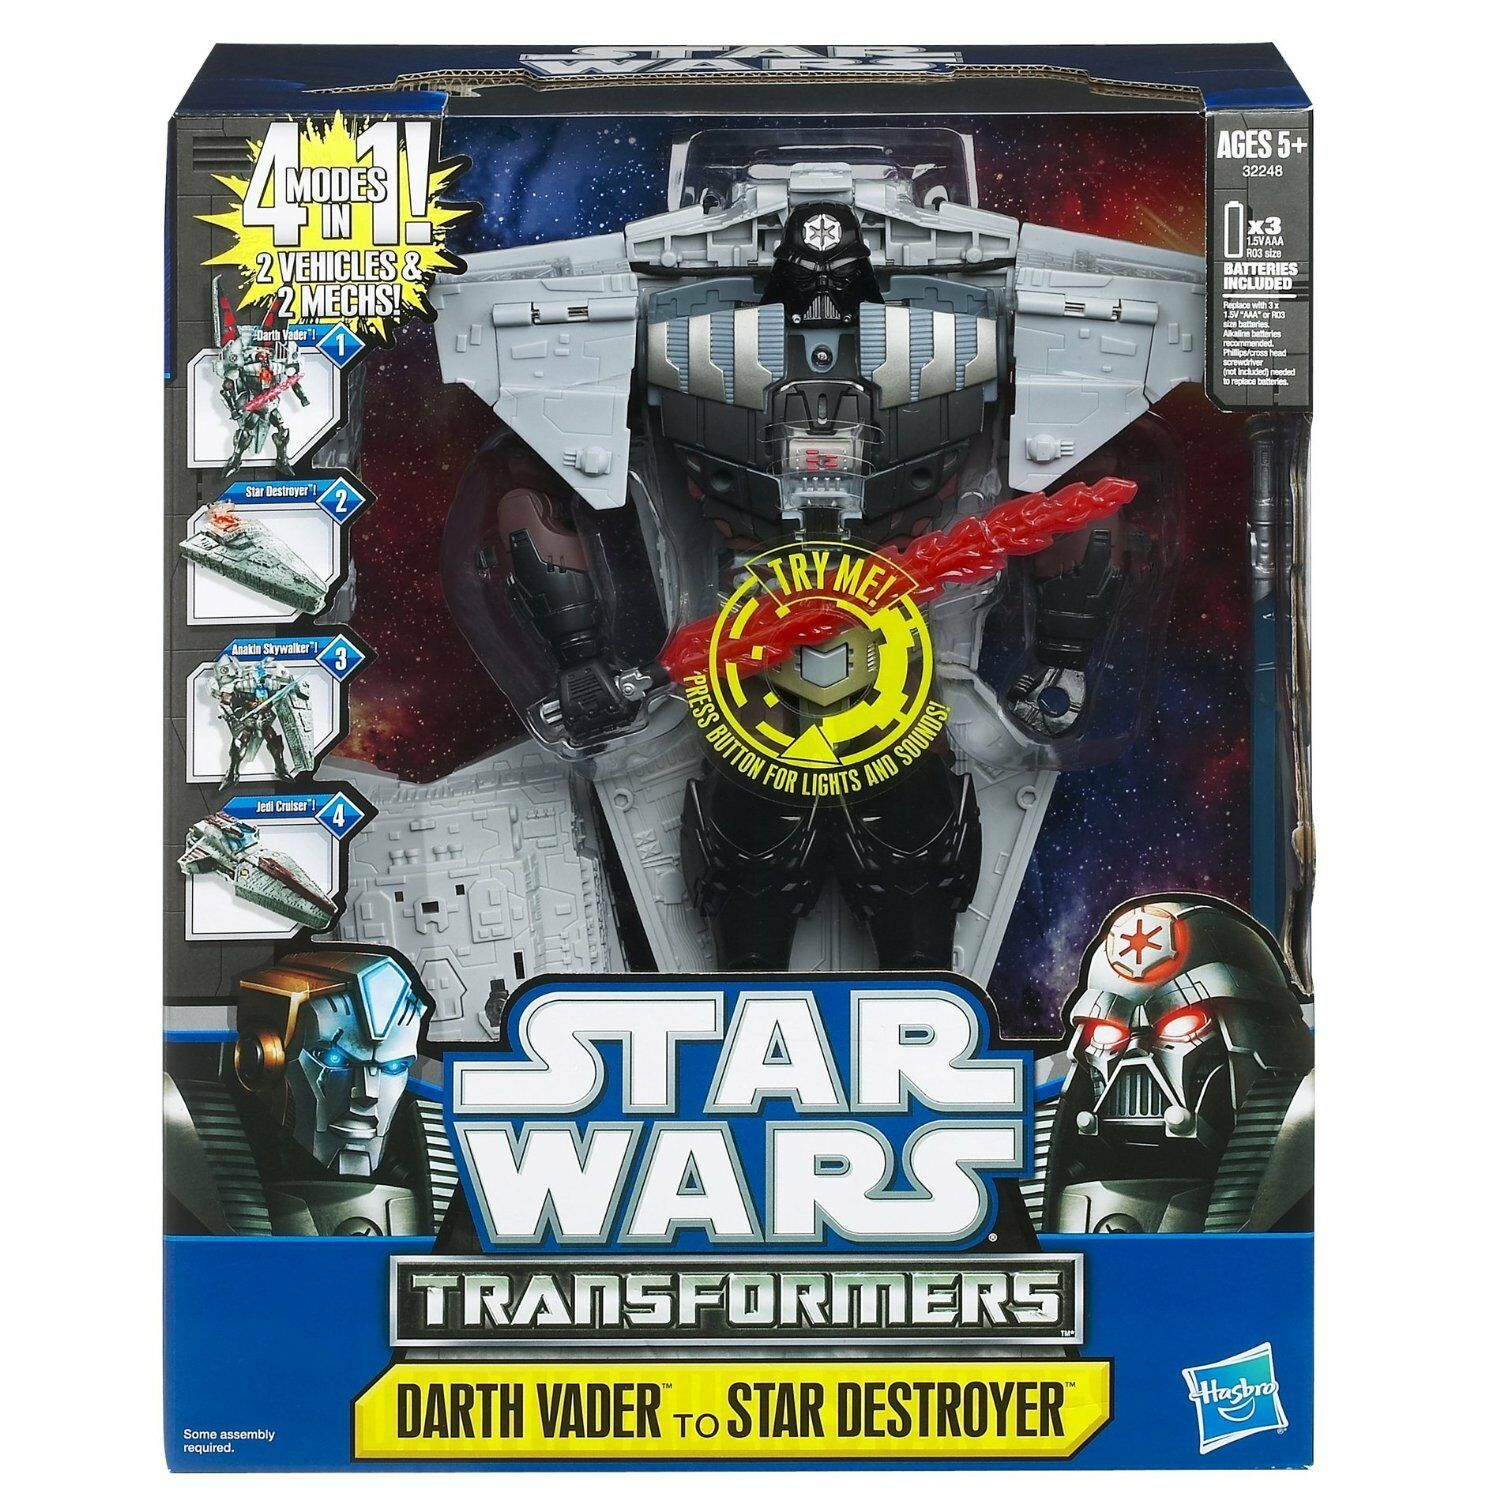 Star Wars Transformers Class III DARTH VADER TO STAR DESTROYER NEW FREE SHIPPING